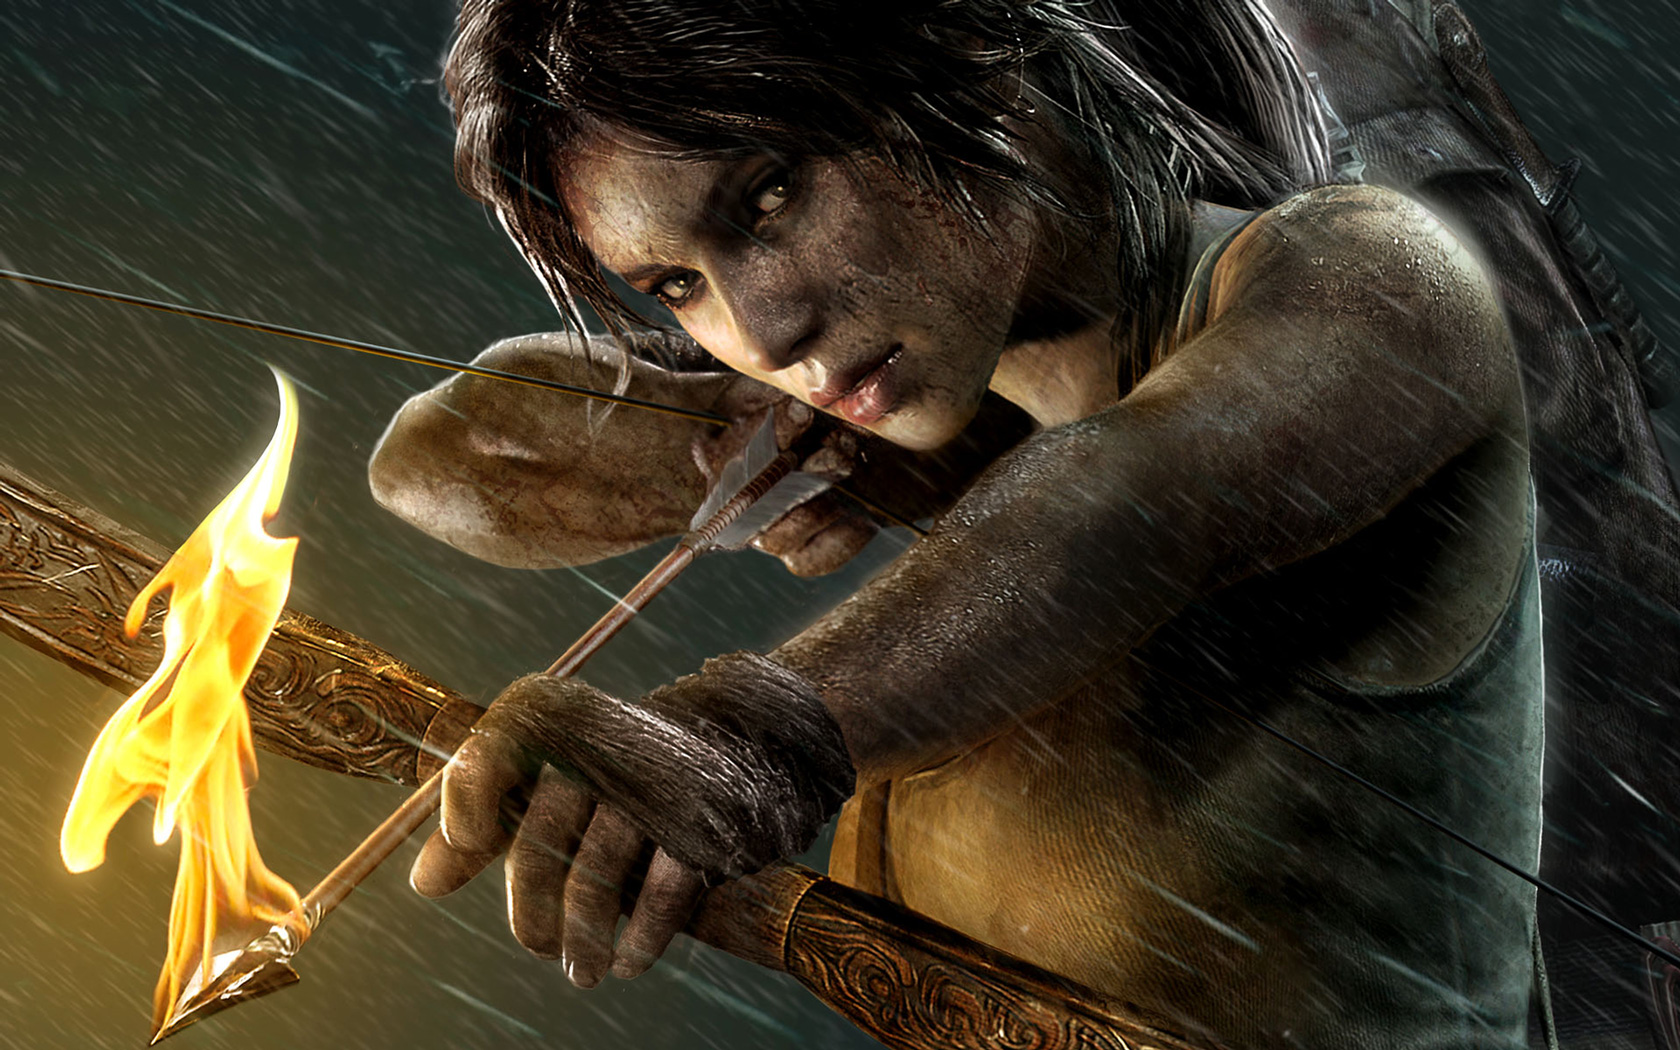 Free Tomb Raider Wallpaper in 1680x1050